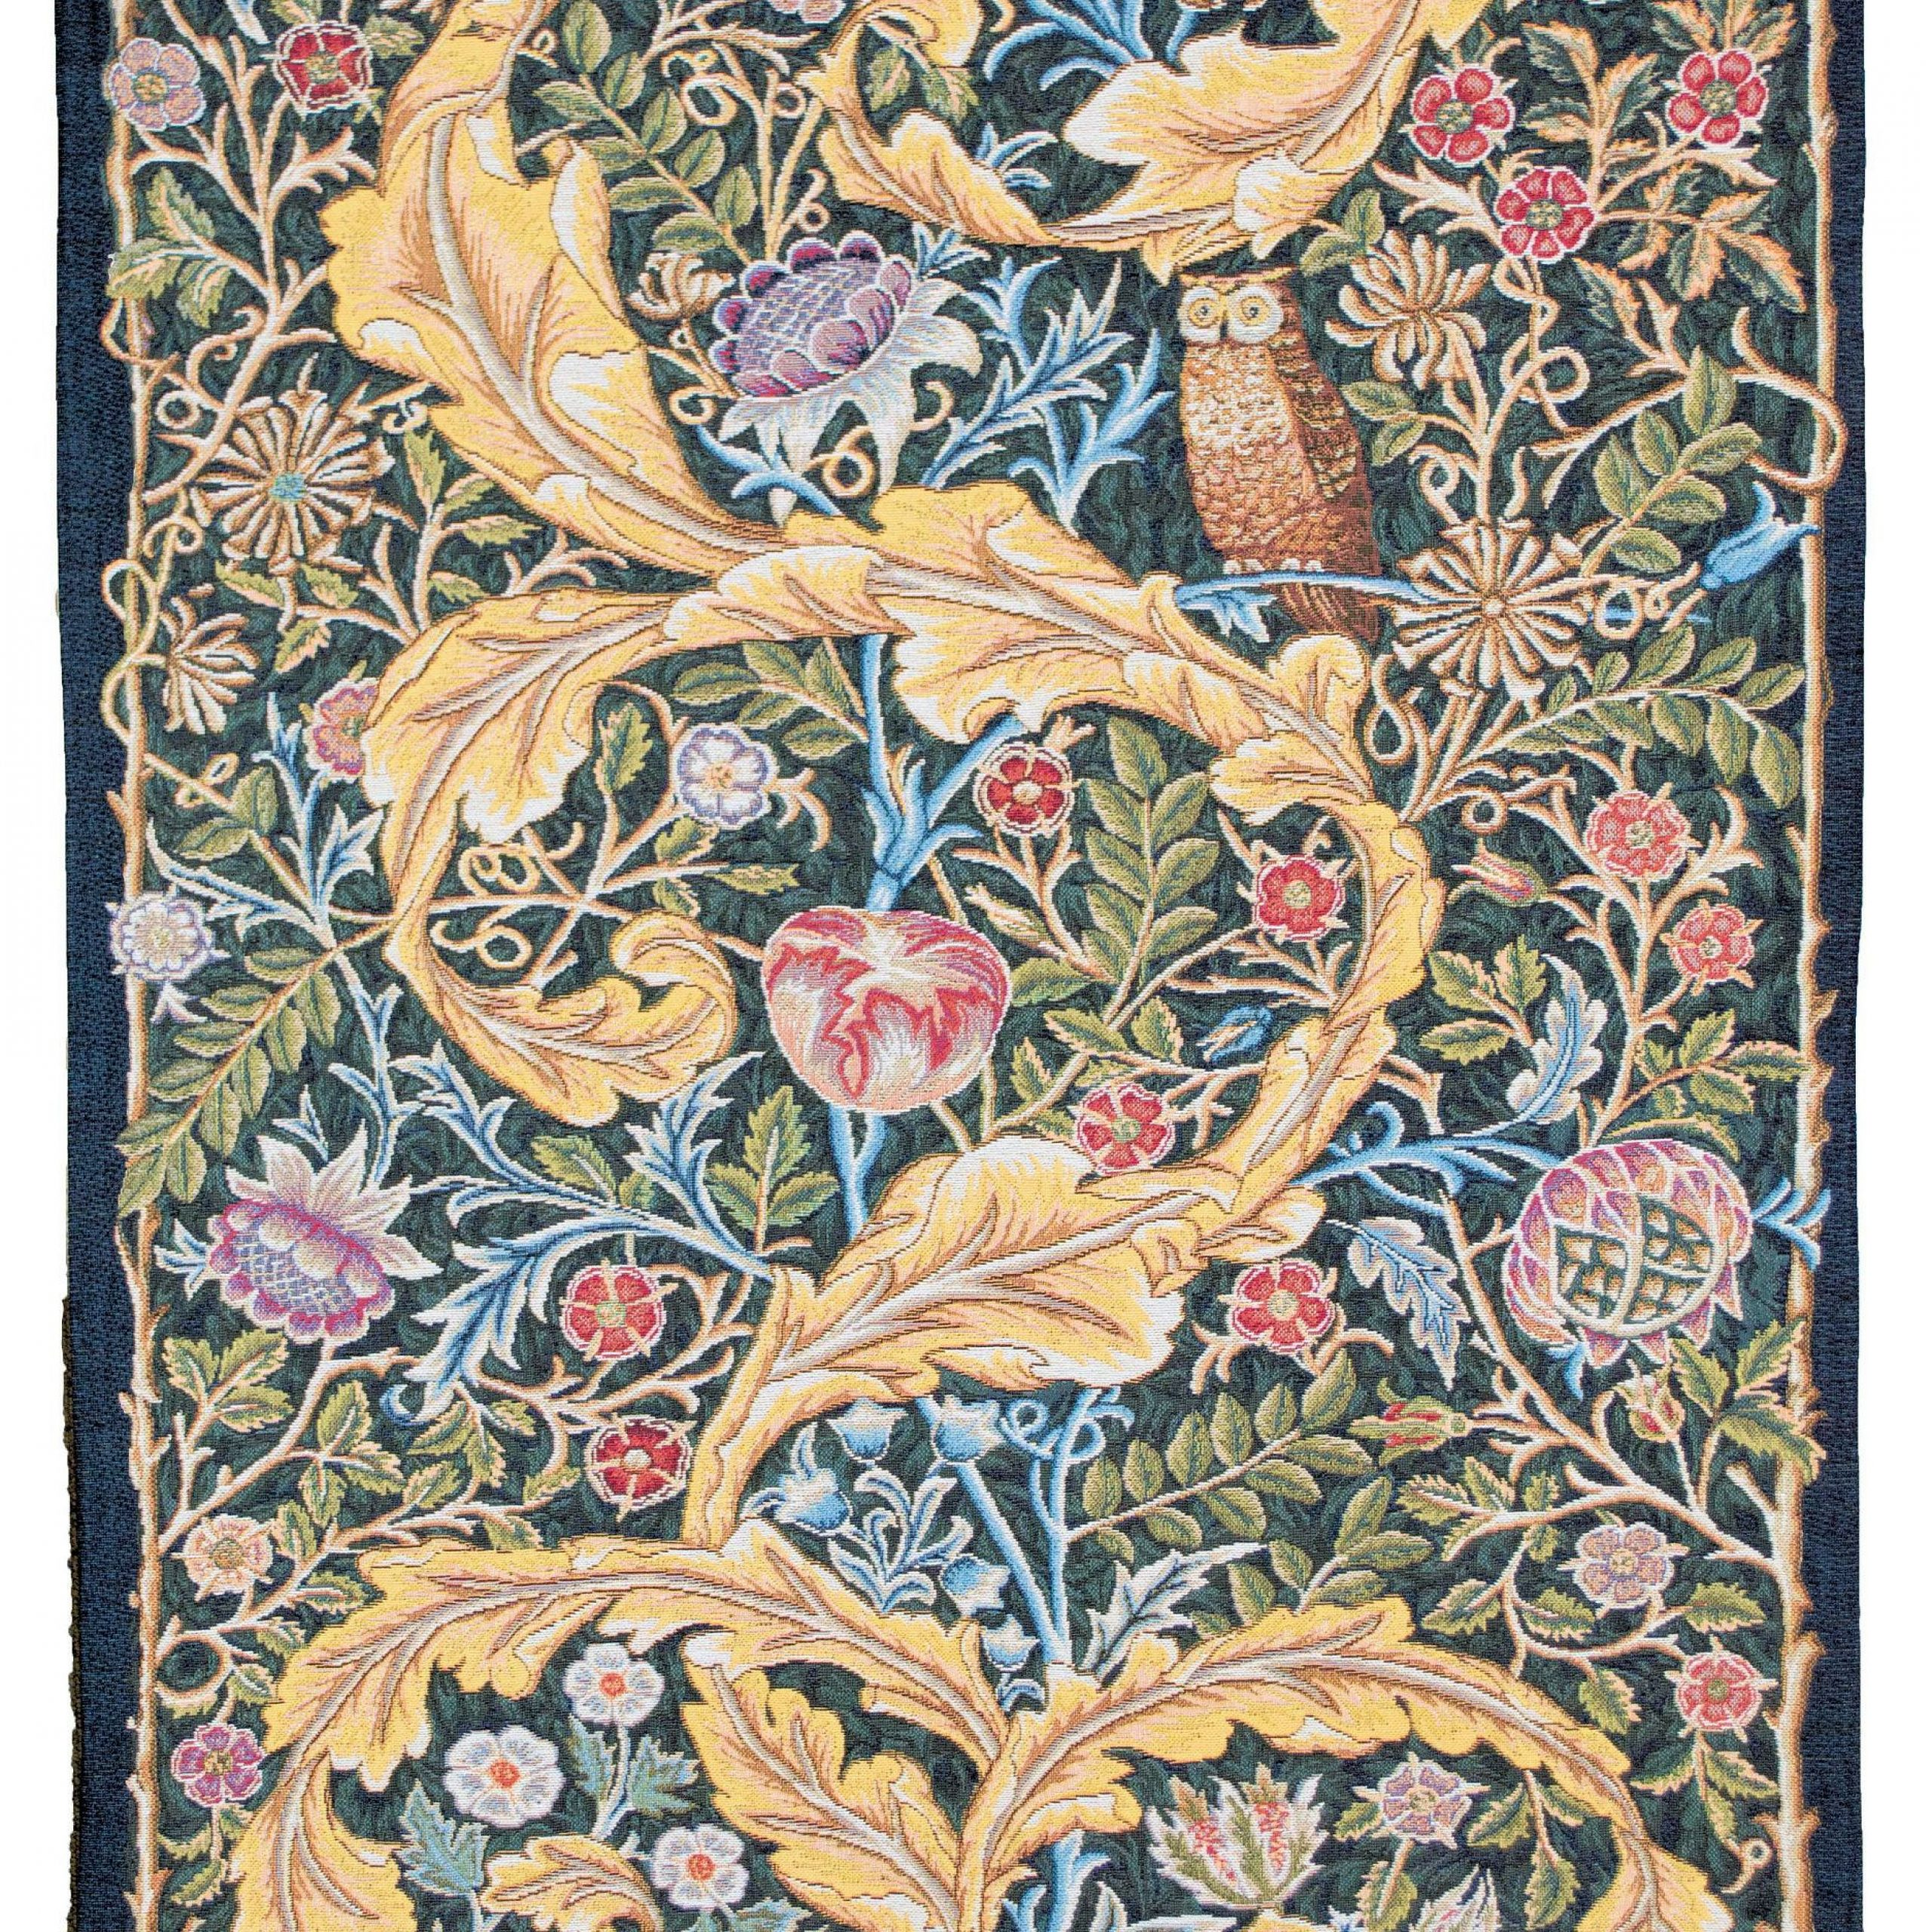 Famous Tapestries – Vozeli Intended For Blended Fabric Vendanges (red) Wall Hangings (View 10 of 20)